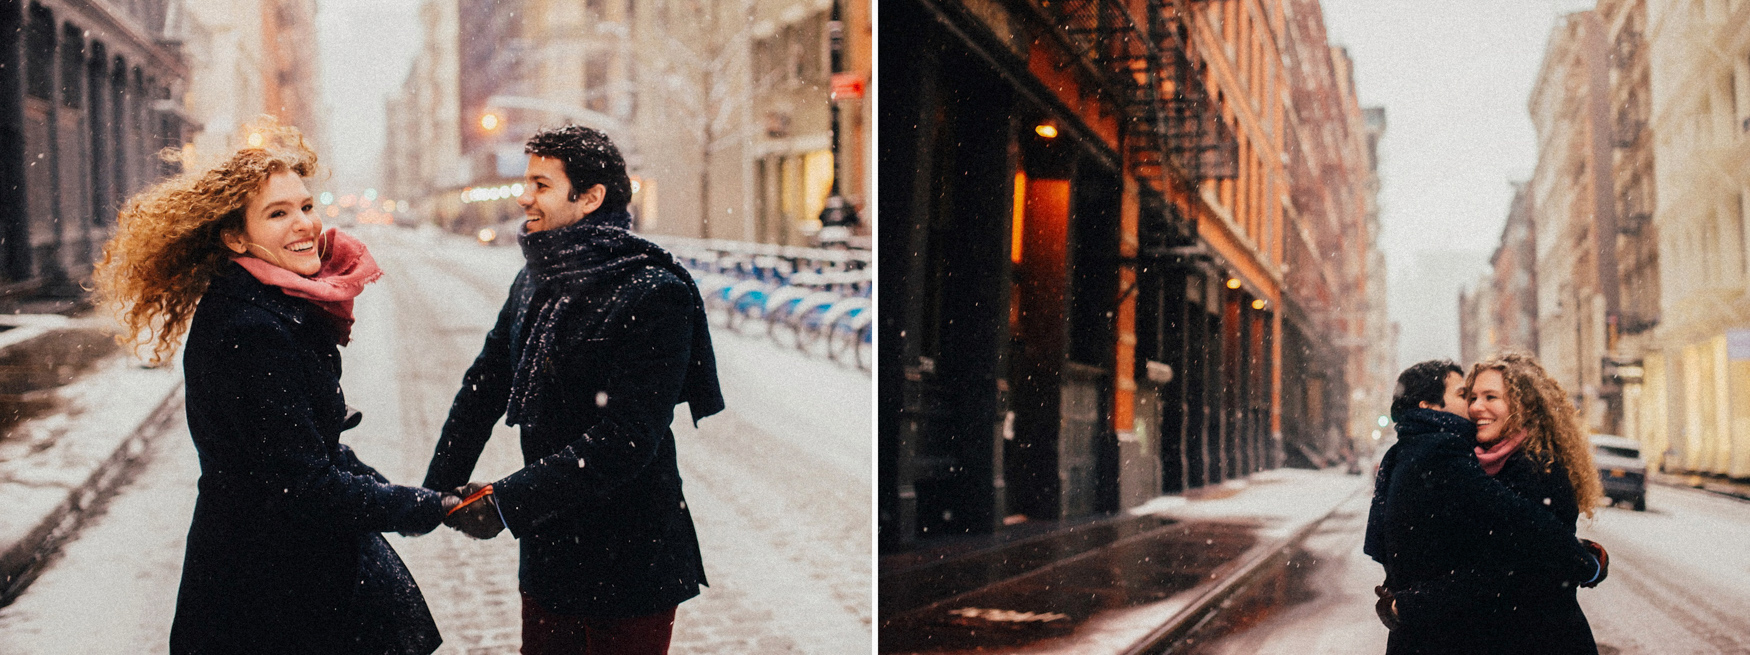 nyc winter snowy manthattan engagement session 024.jpg